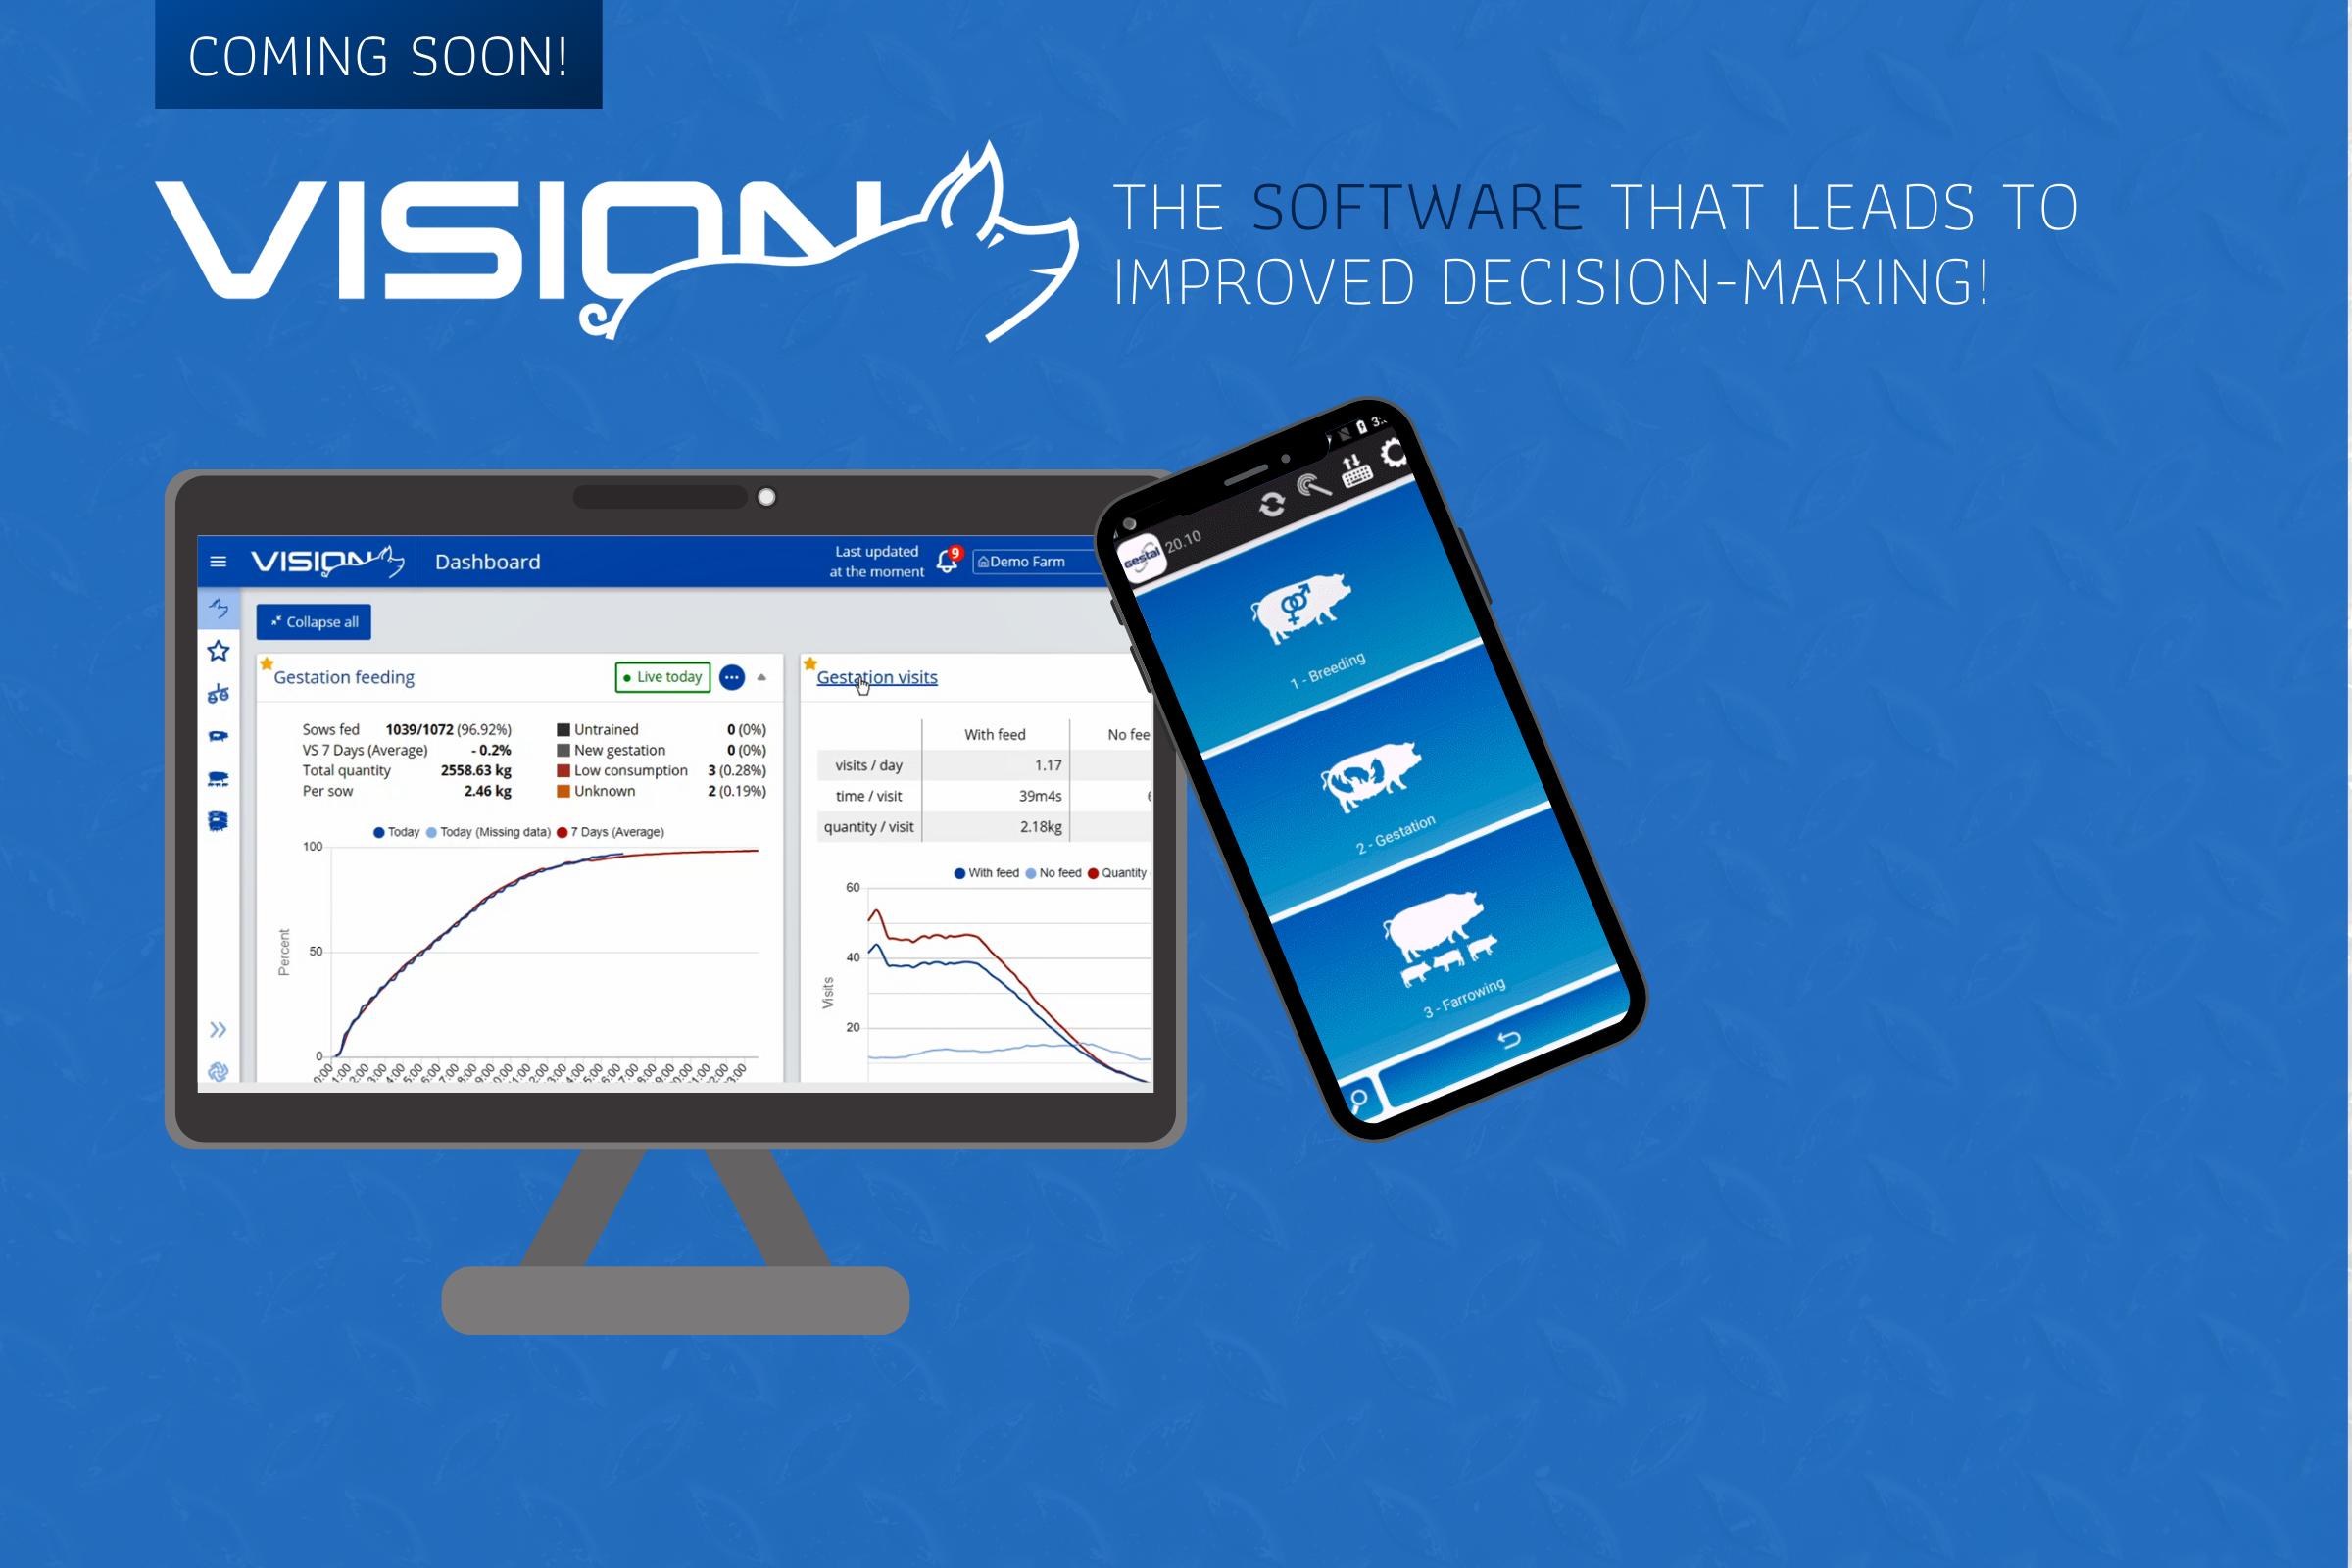 Vision - feed and herd management software